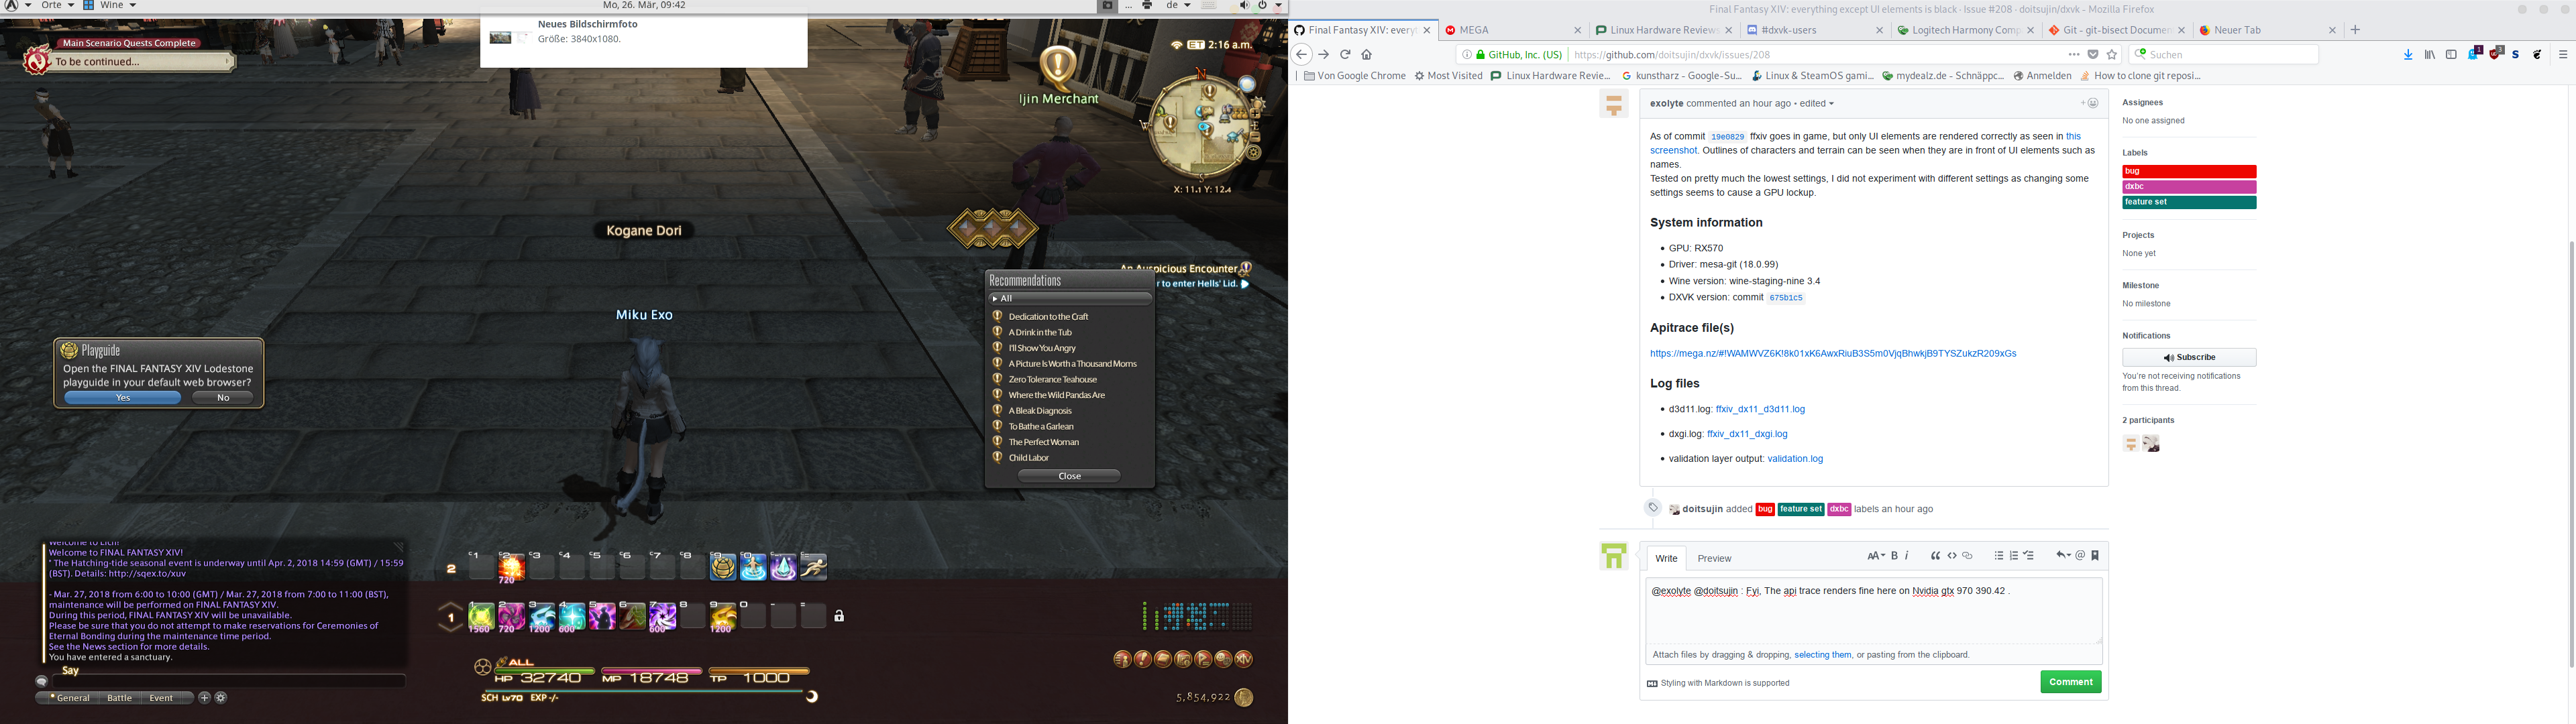 Final Fantasy XIV: everything except UI elements is black